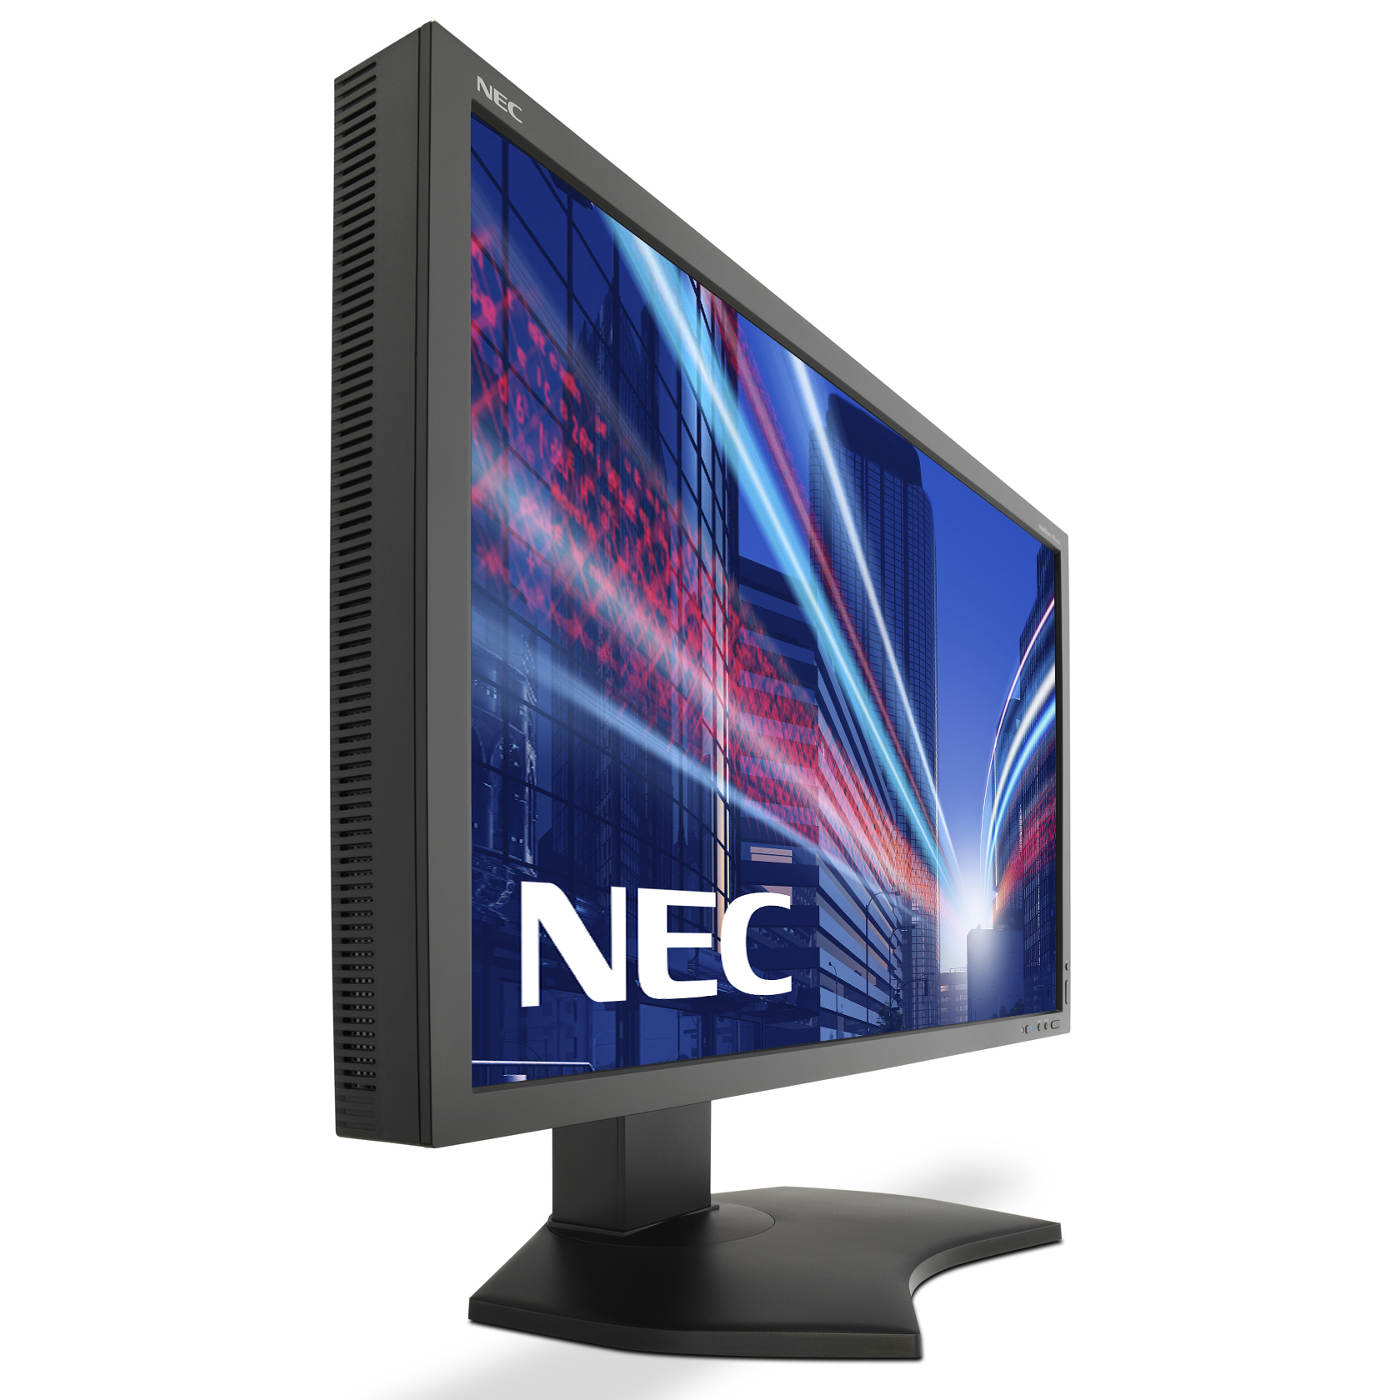 Nec 30 led multisync pa302w ecran pc nec sur for Ecran photo nec